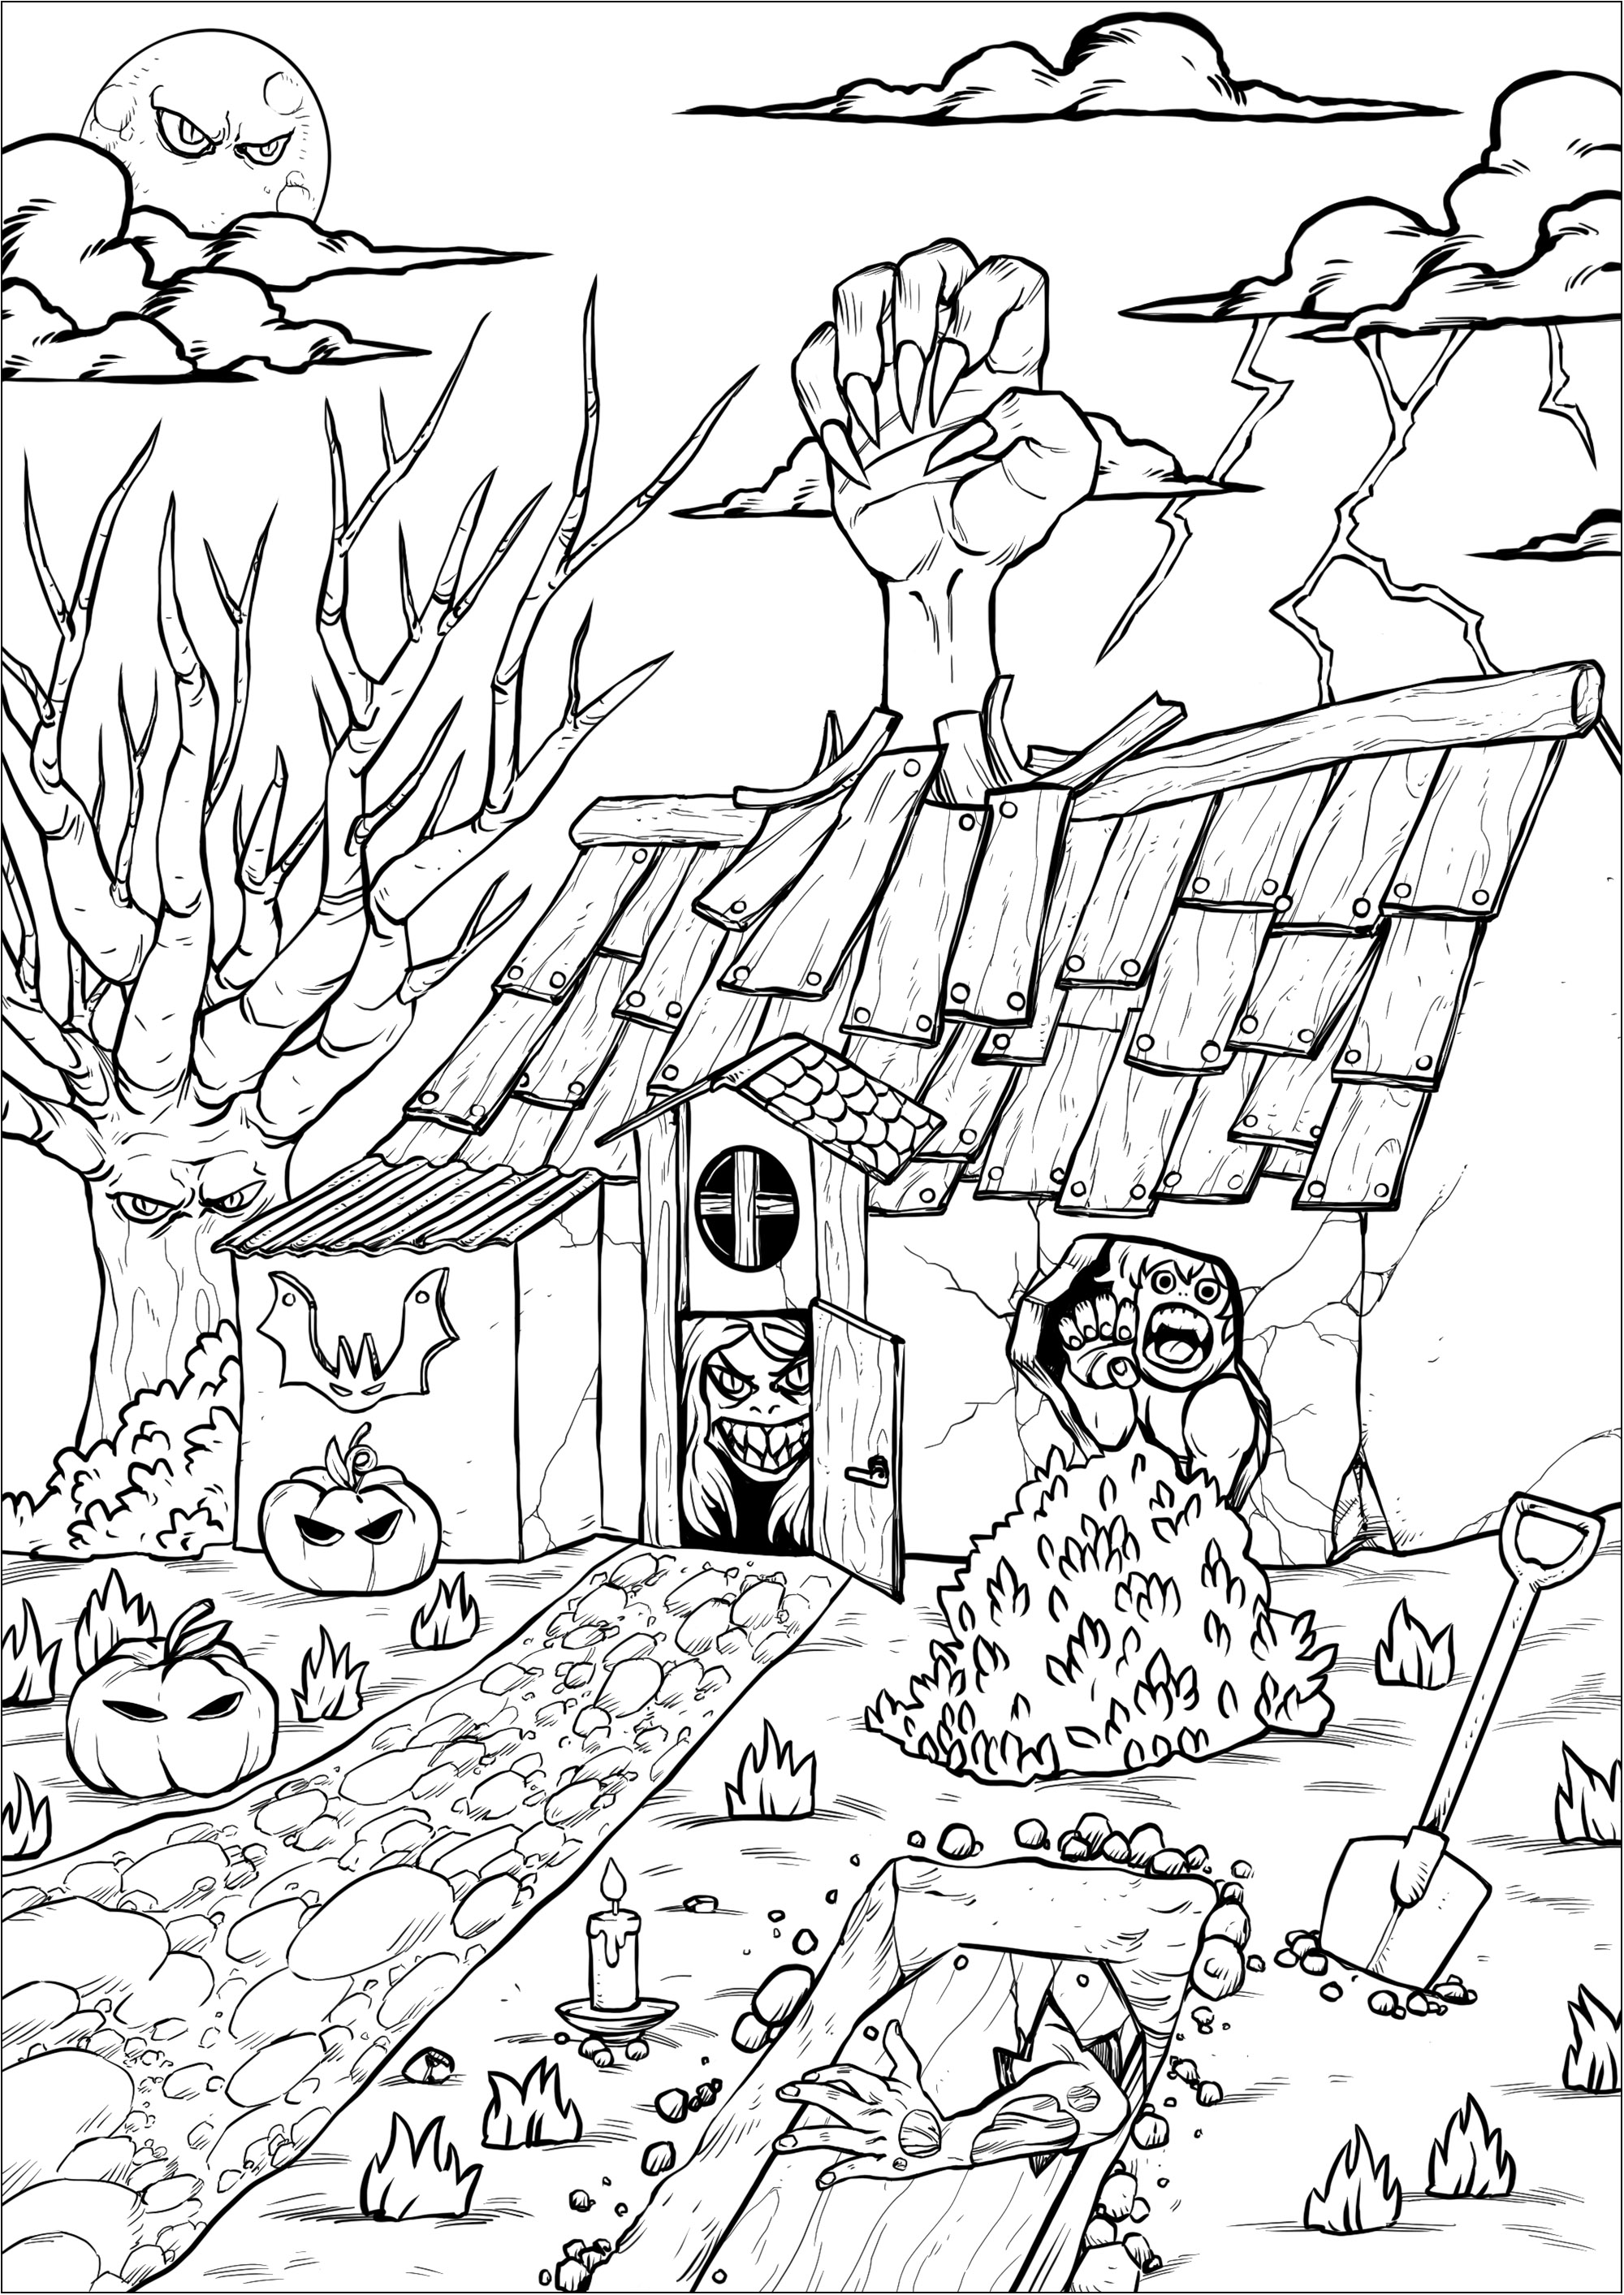 Haunted house full of strange characters ... A really scary coloring page